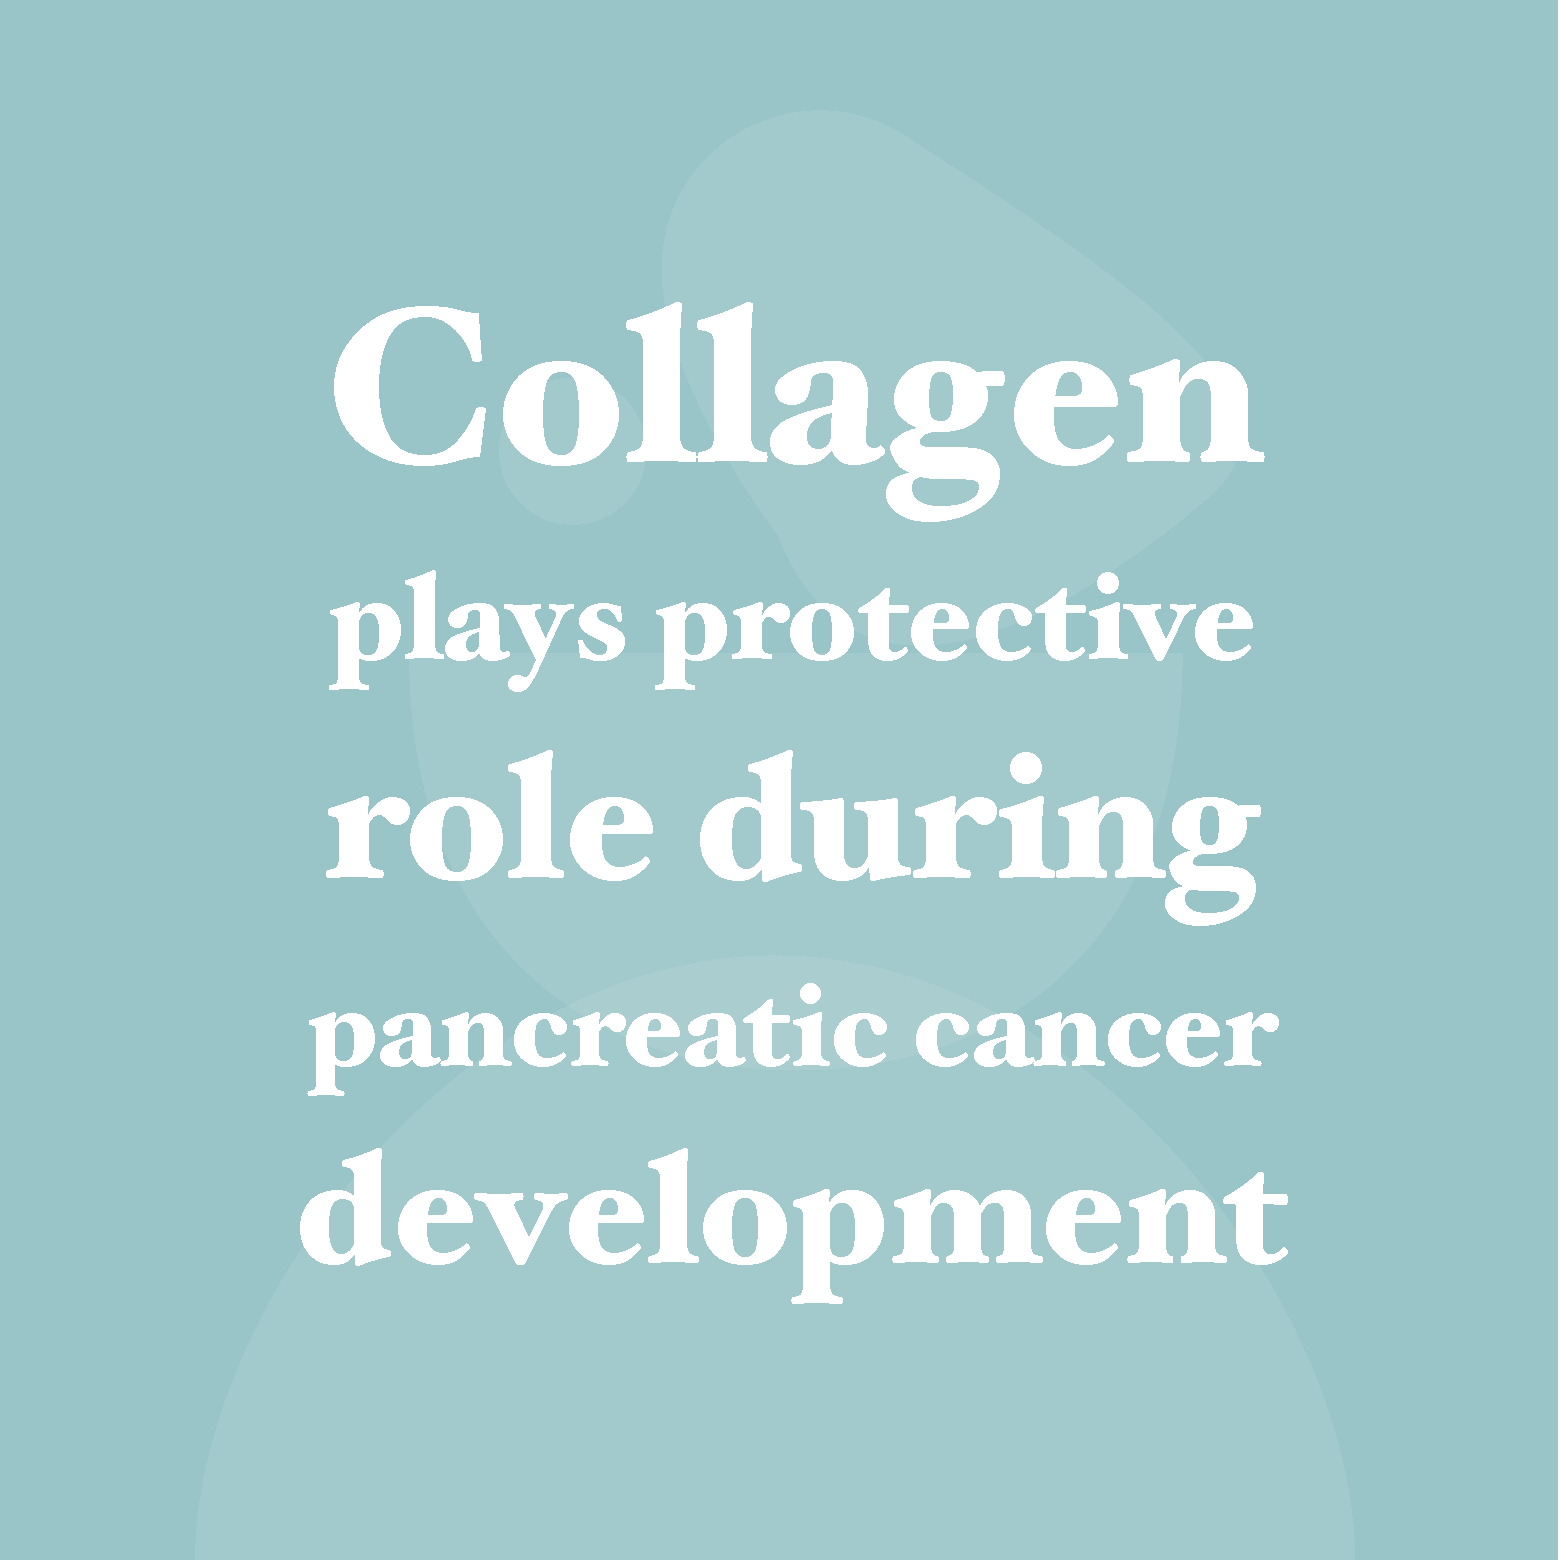 Collagen plays protective role during pancreatic cancer development